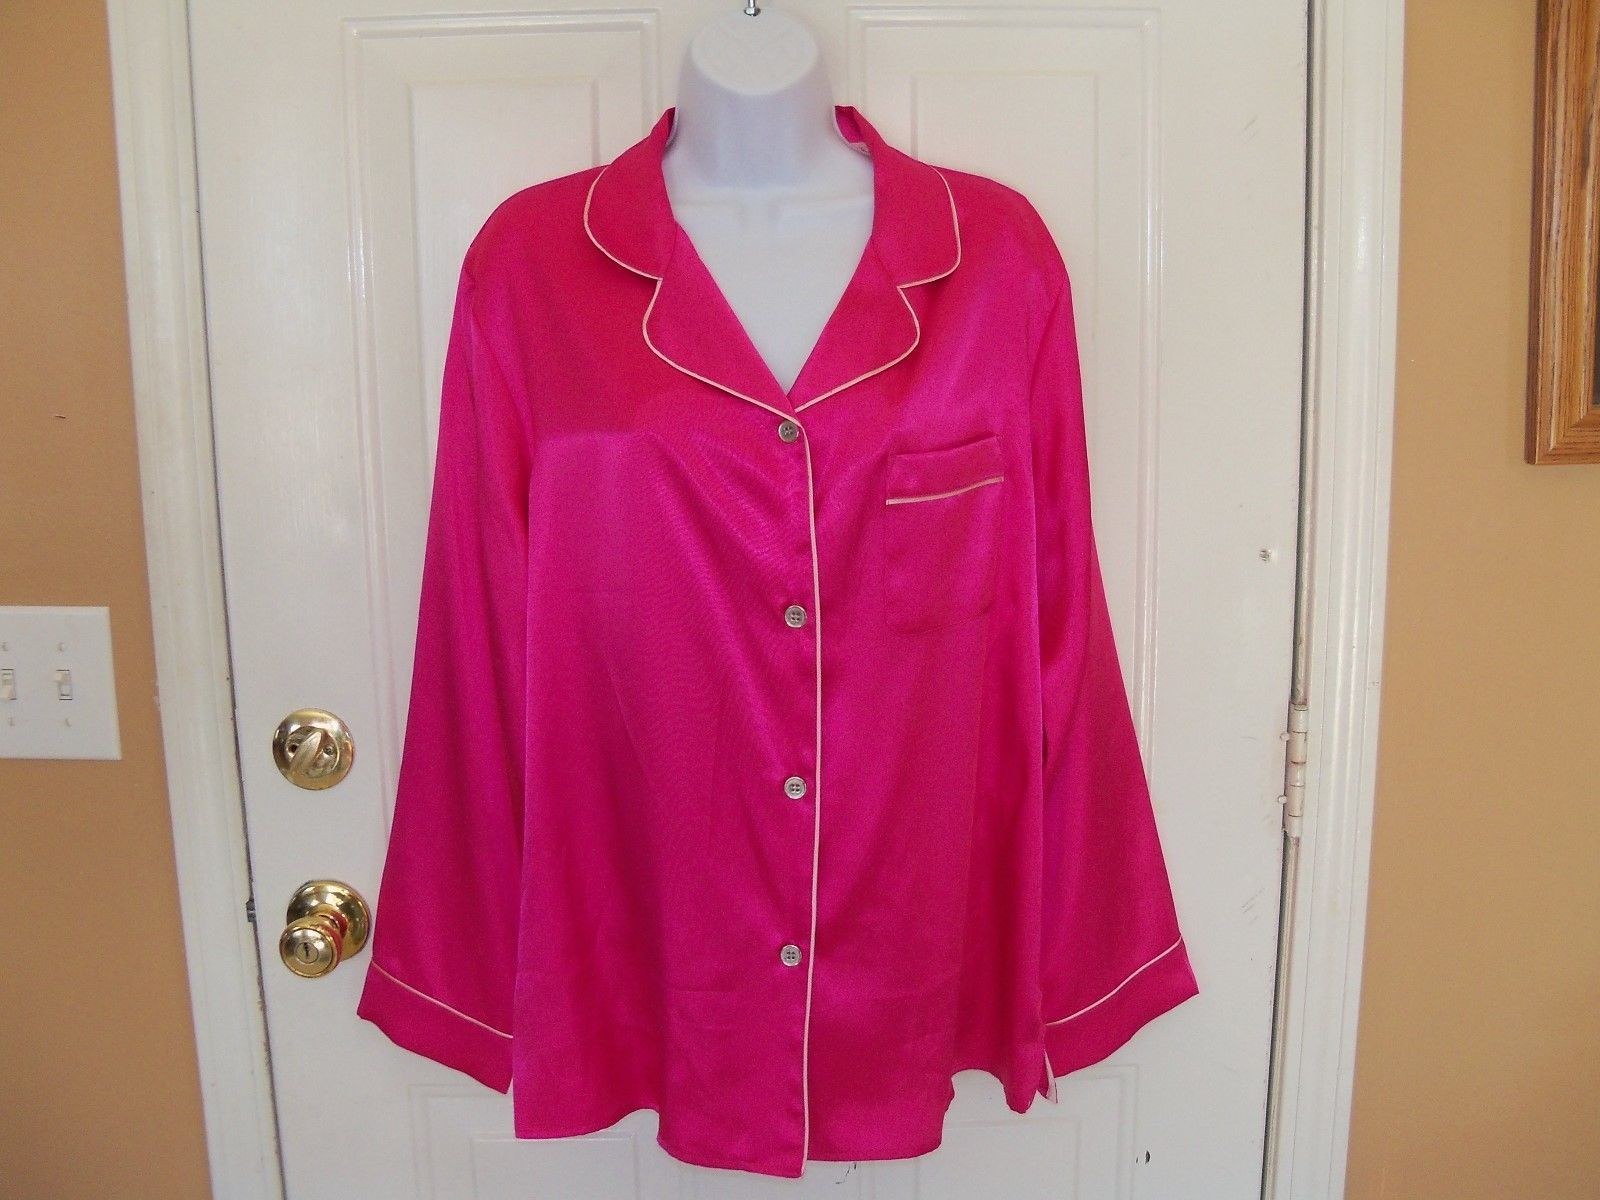 Gilligan & O'Malley Hot Pink Sleep Shirt Size Large Women's NEW LAST ONE - $28.49